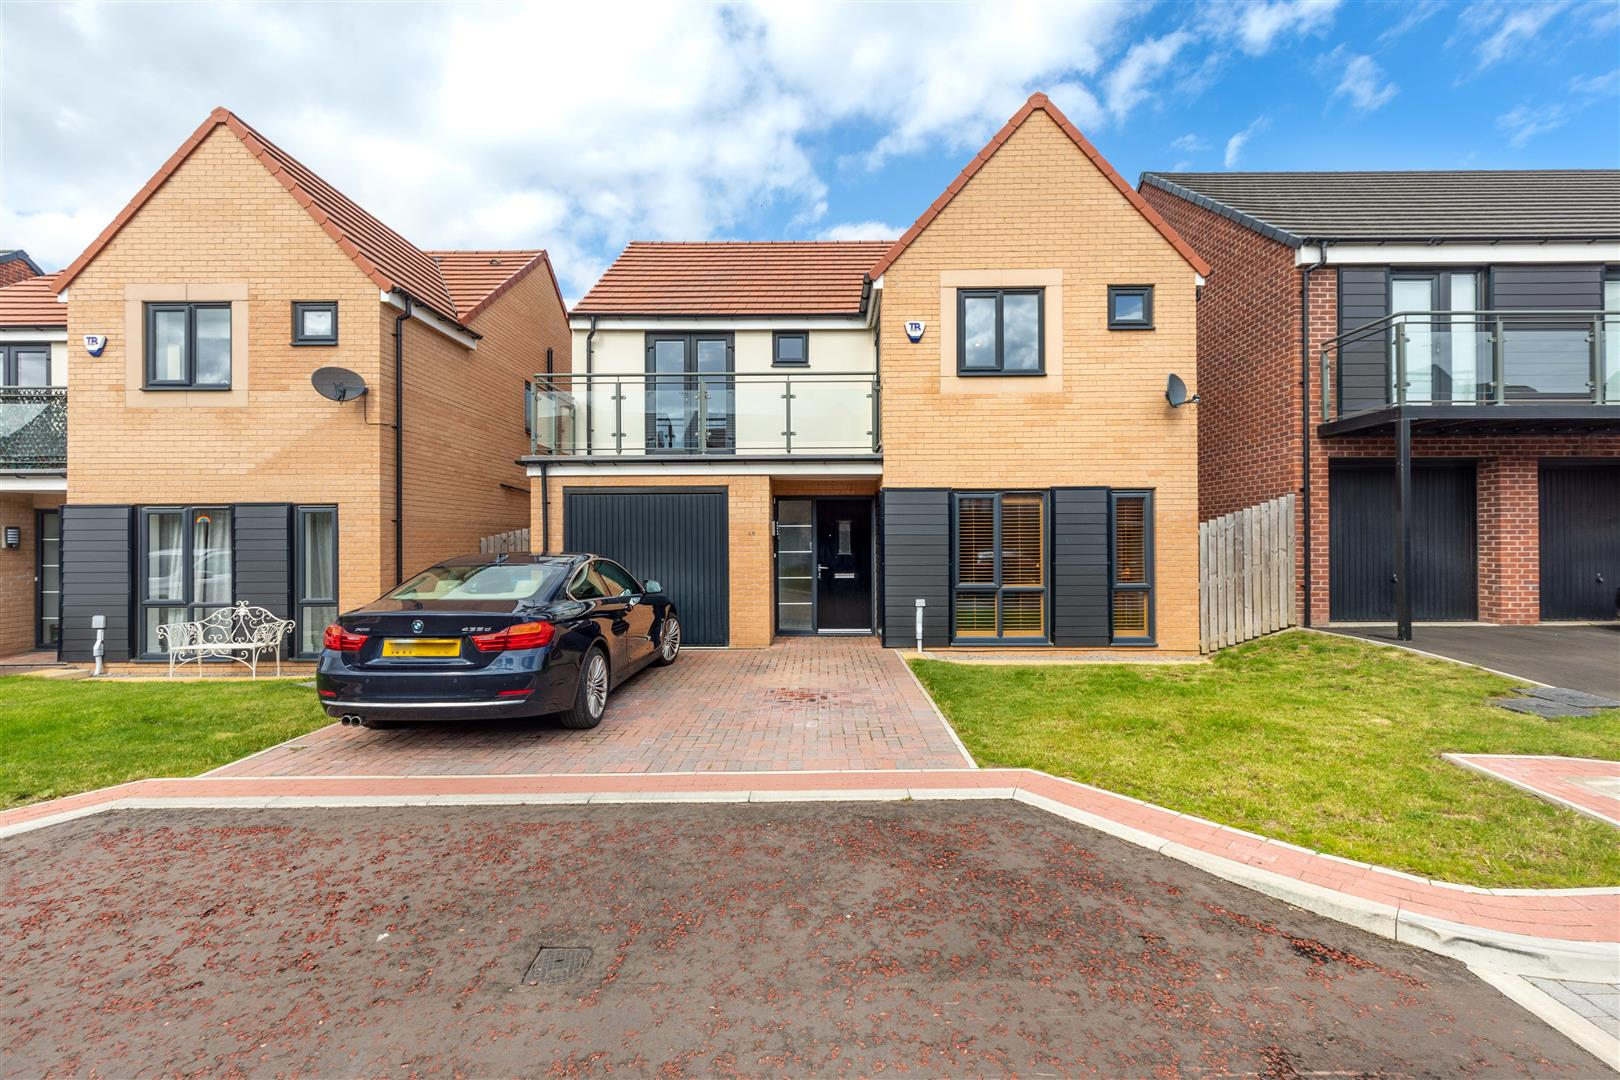 4 bed detached house for sale in Newcastle Upon Tyne, NE13 9DJ - Property Image 1